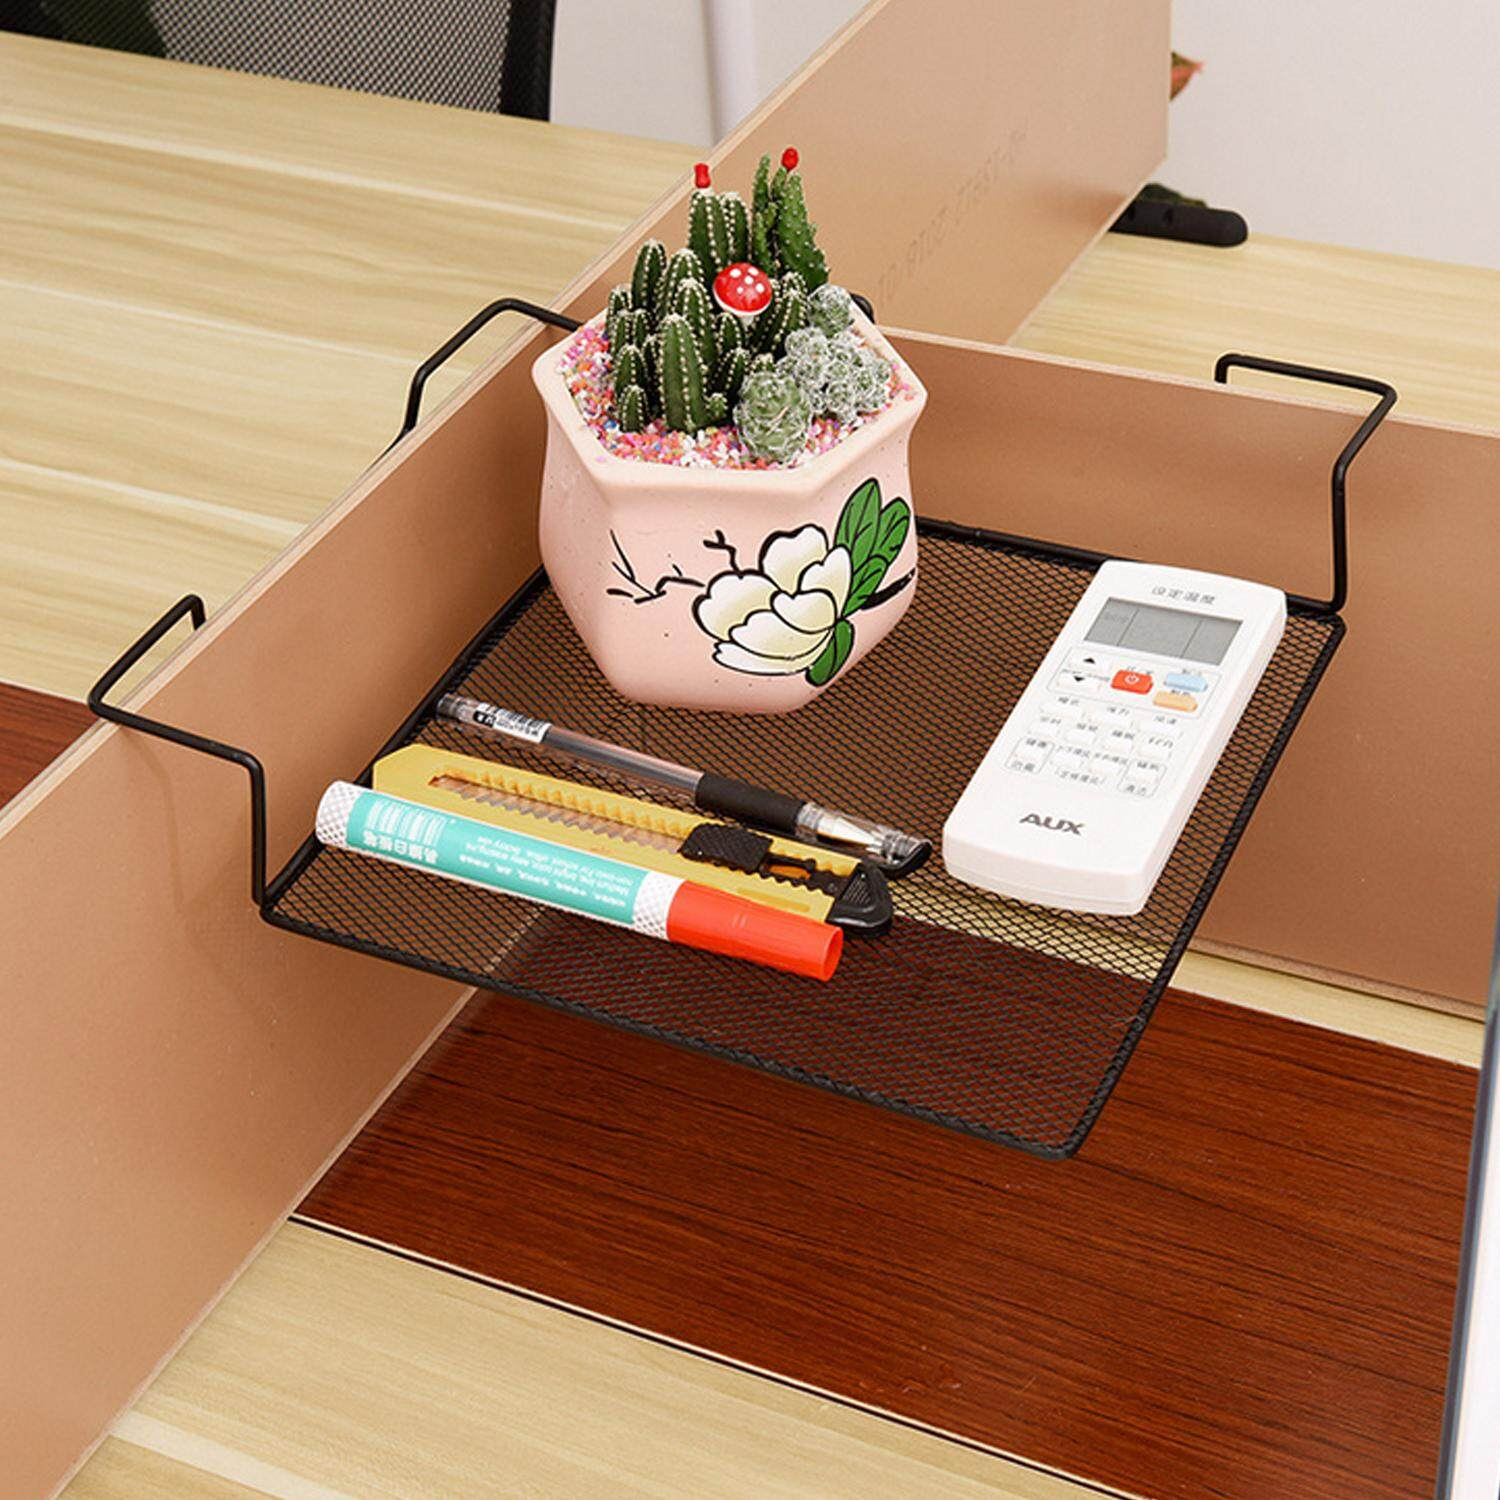 Fashion Square Iron Wire Balcony Office Cubicle Corner Storage Rack Shelf For Books Pens Telephone Plants Flower Pots Picture Frames